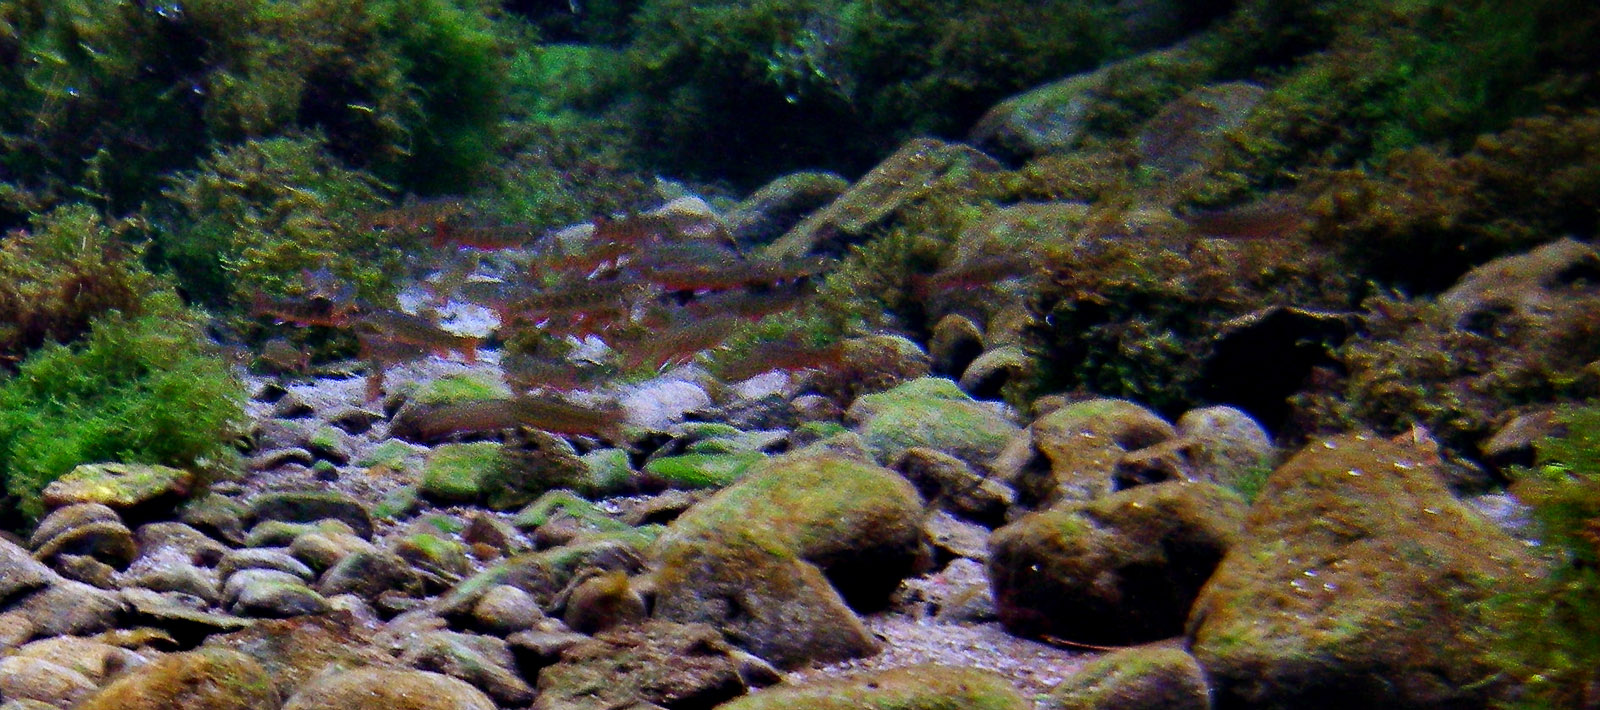 I was able to photograph these young yearling brook trout from a distance in the crystal clear water of a small spring.  When I tried to get closer, they all hid in the lush vegetation. From Mystery Creek # 19 in Wisconsin.